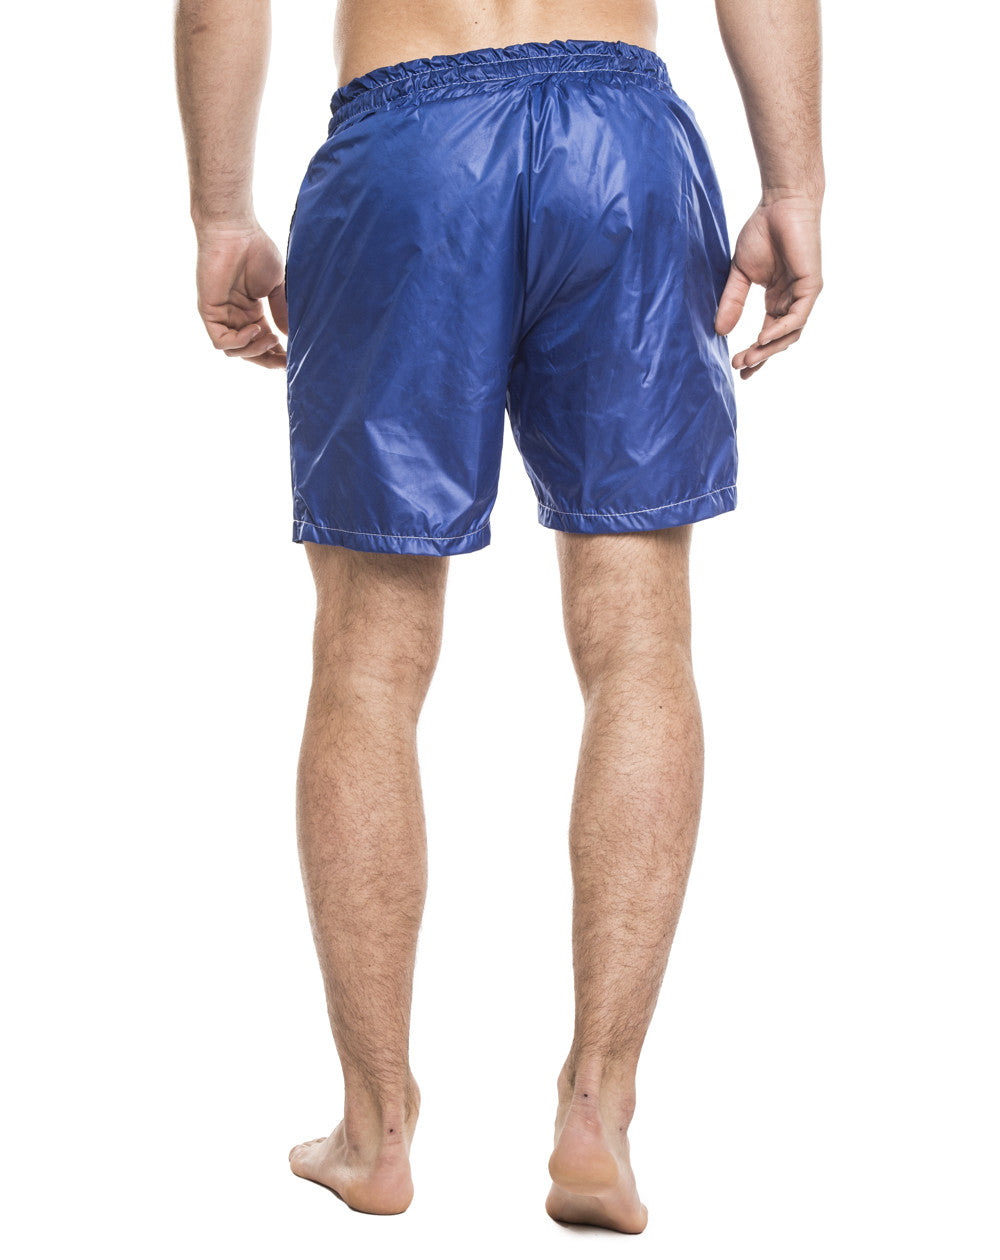 MEN'S CLOTHING | BOTTOMS | SWIMWEAR | BLUE ROYAL SWIM PANTS | SWIM SHORTS | TECHNICAL FABRIC | ELASTICATED DRAWSTRING WAISTBAND | MESH LINING | MID LENGTH | SIDE POCKETS | POLYESTER | #SUMMERVIBES | NOHOW